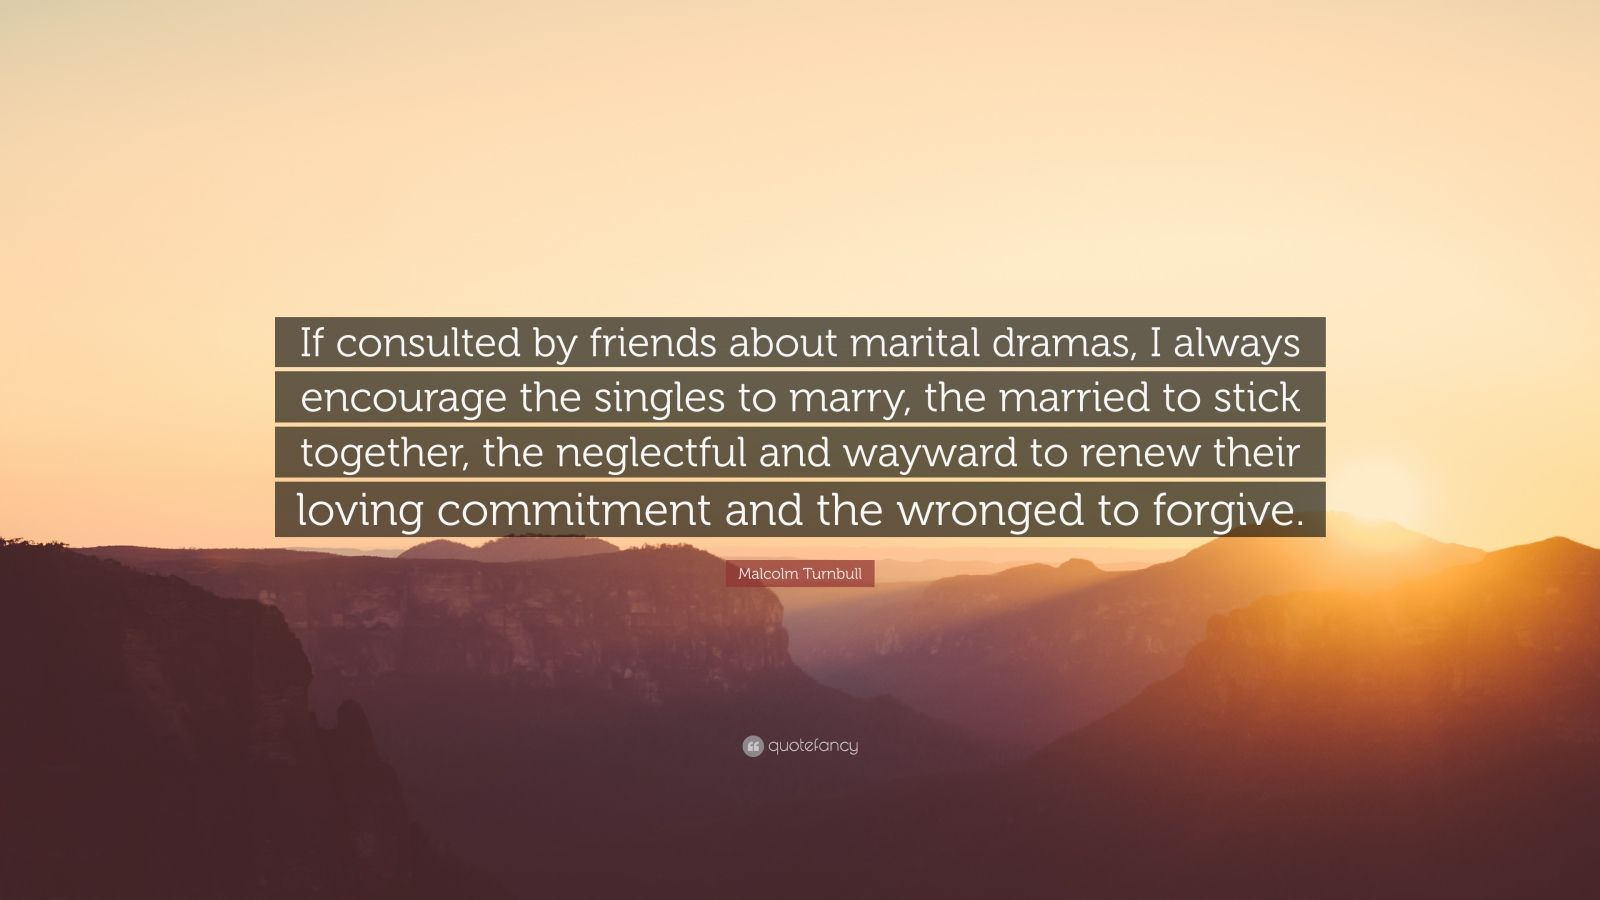 "Malcolm Turnbull Quote: ""If consulted by friends about marital dramas, I always encourage the singles to marry, the married to stick together, the neglectful and wayward to renew their loving commitment and the wronged to forgive."""